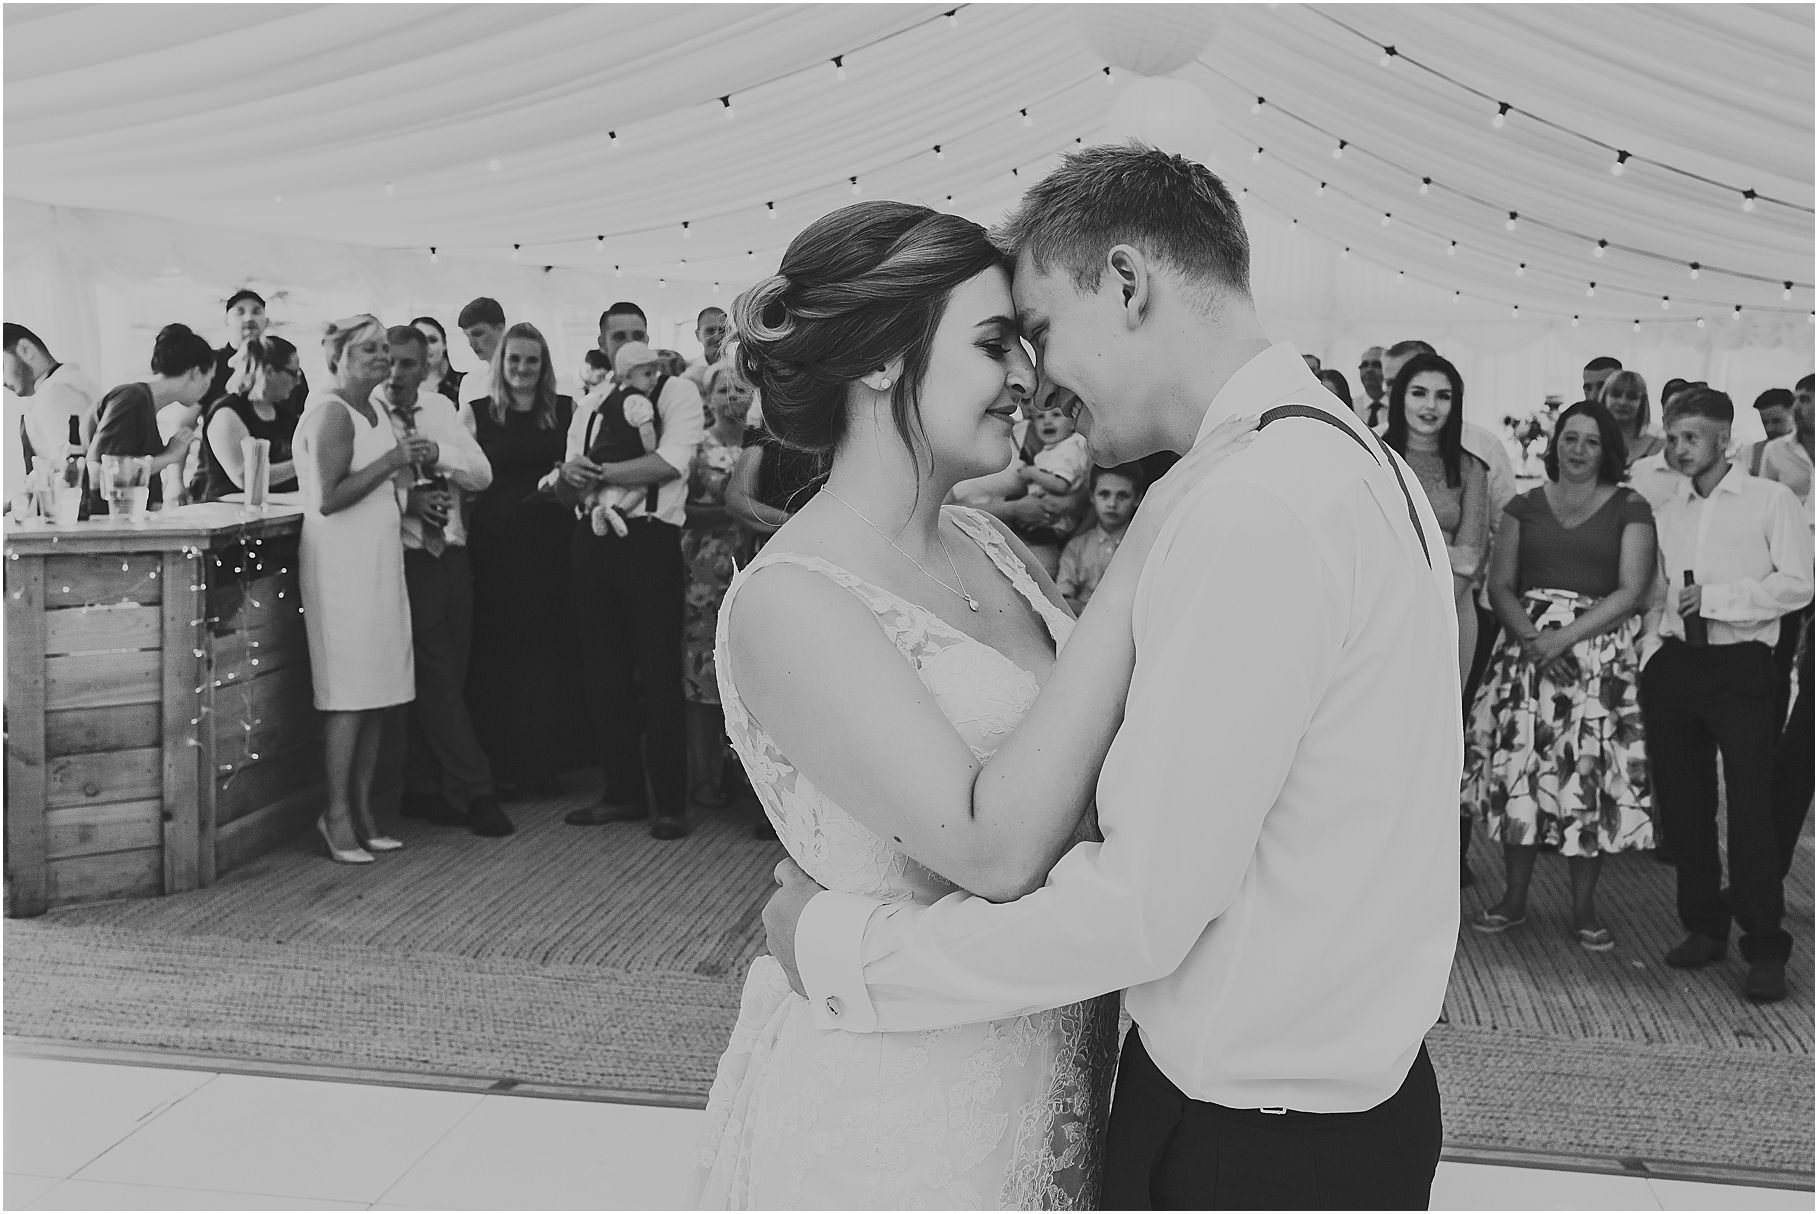 Rutland Weddings Exton Hall Exton Oakham Rutland Water Photographer 1113 - Mr and Mrs Barker // RUTLAND WEDDING